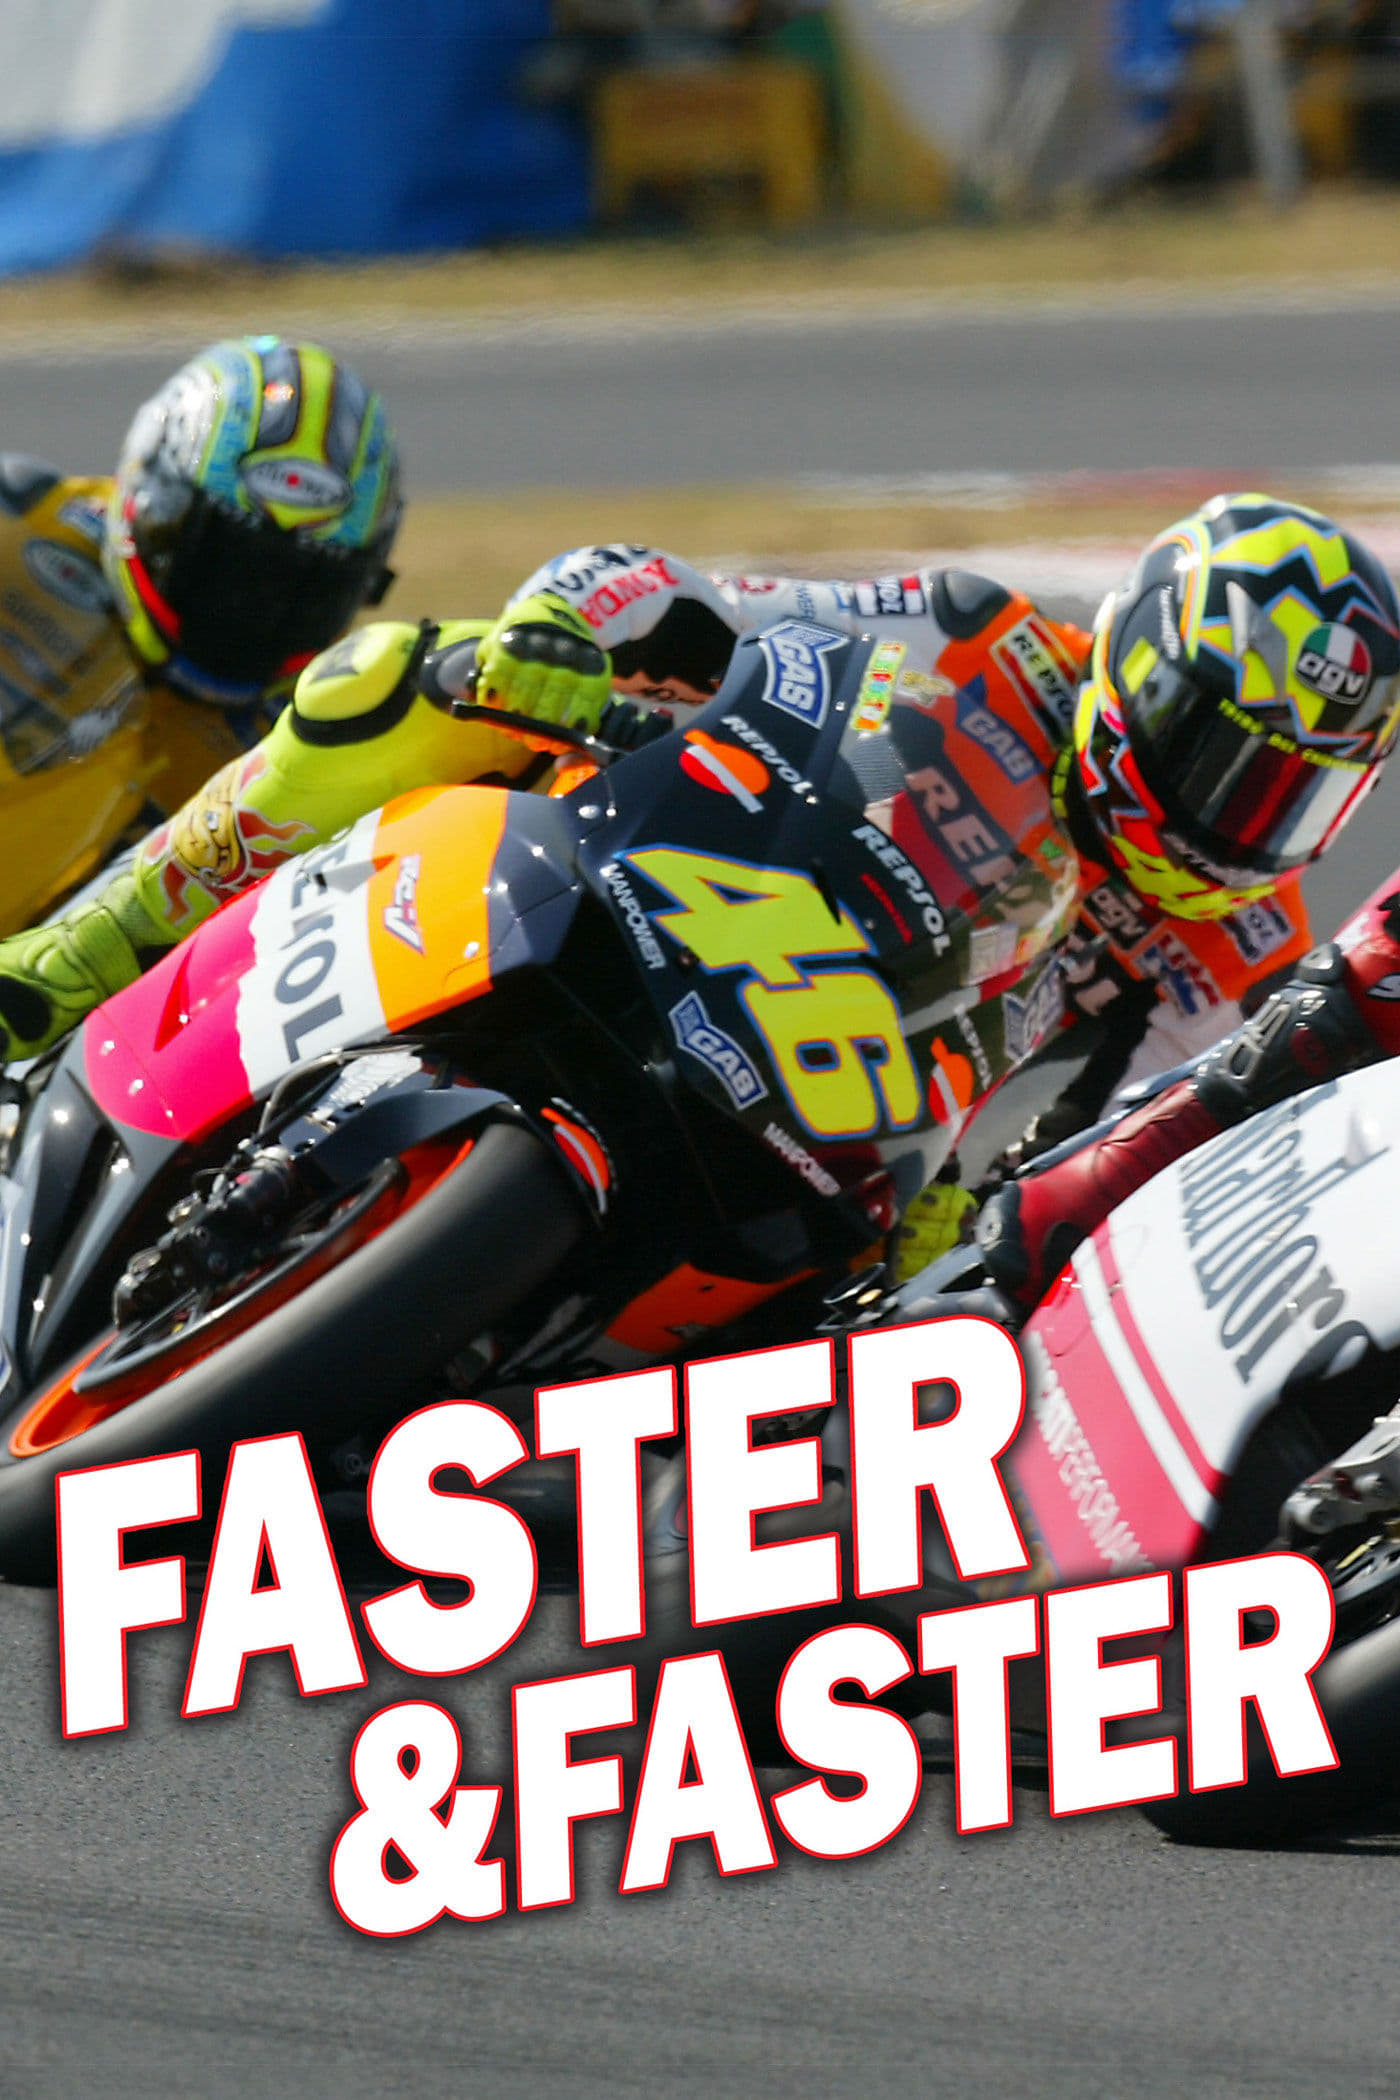 Faster & Faster (2004)